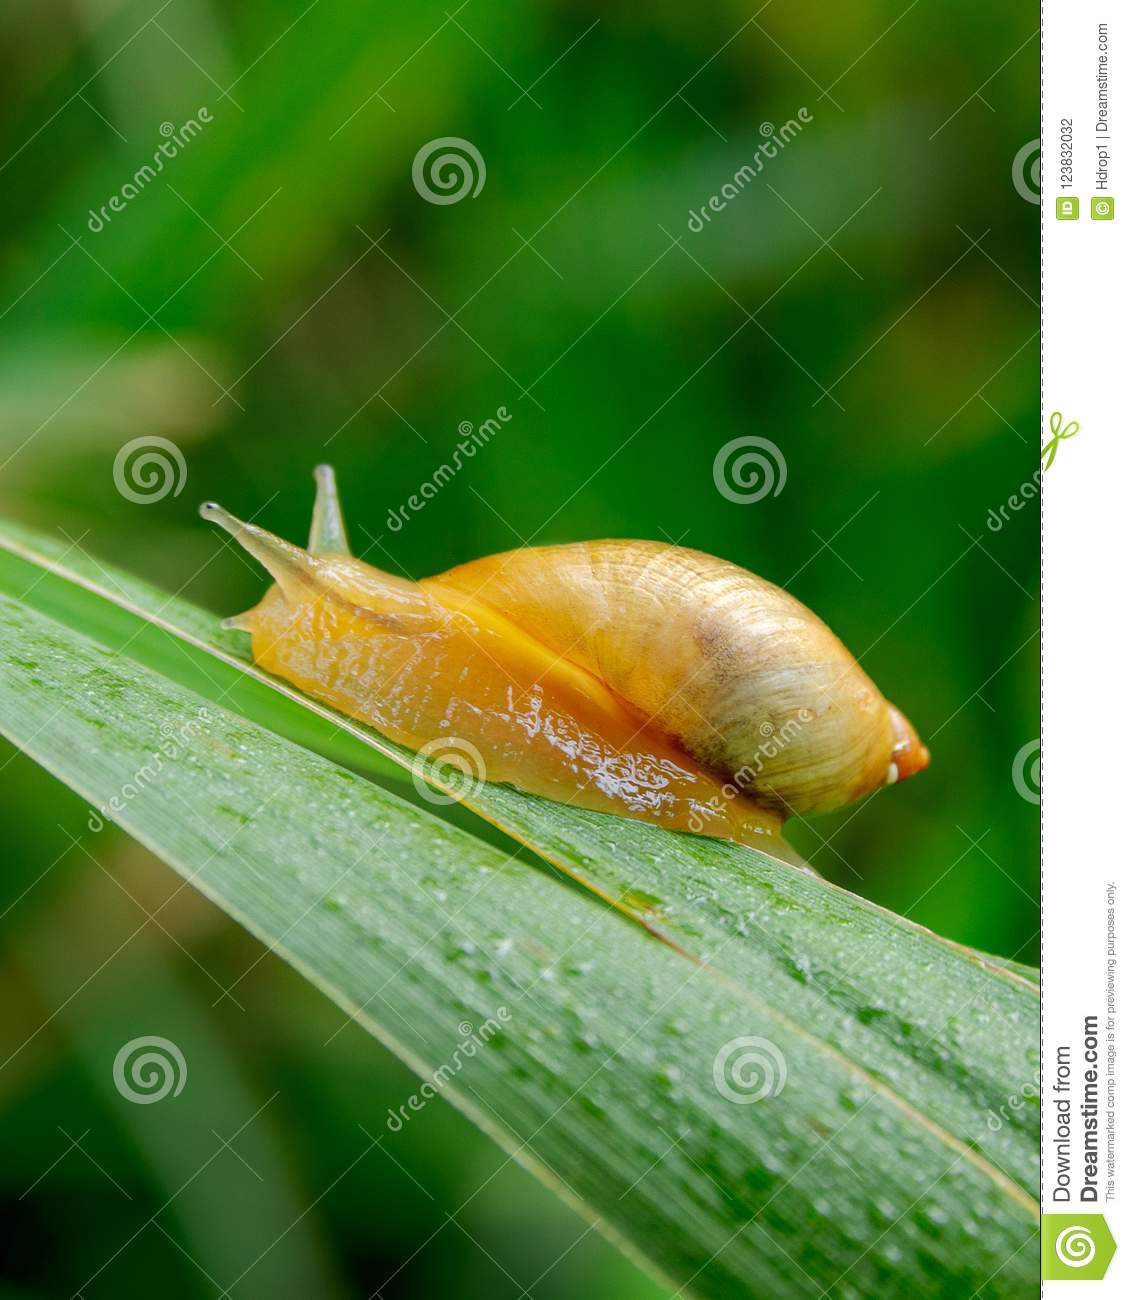 Small yellow baby snail on a leaf